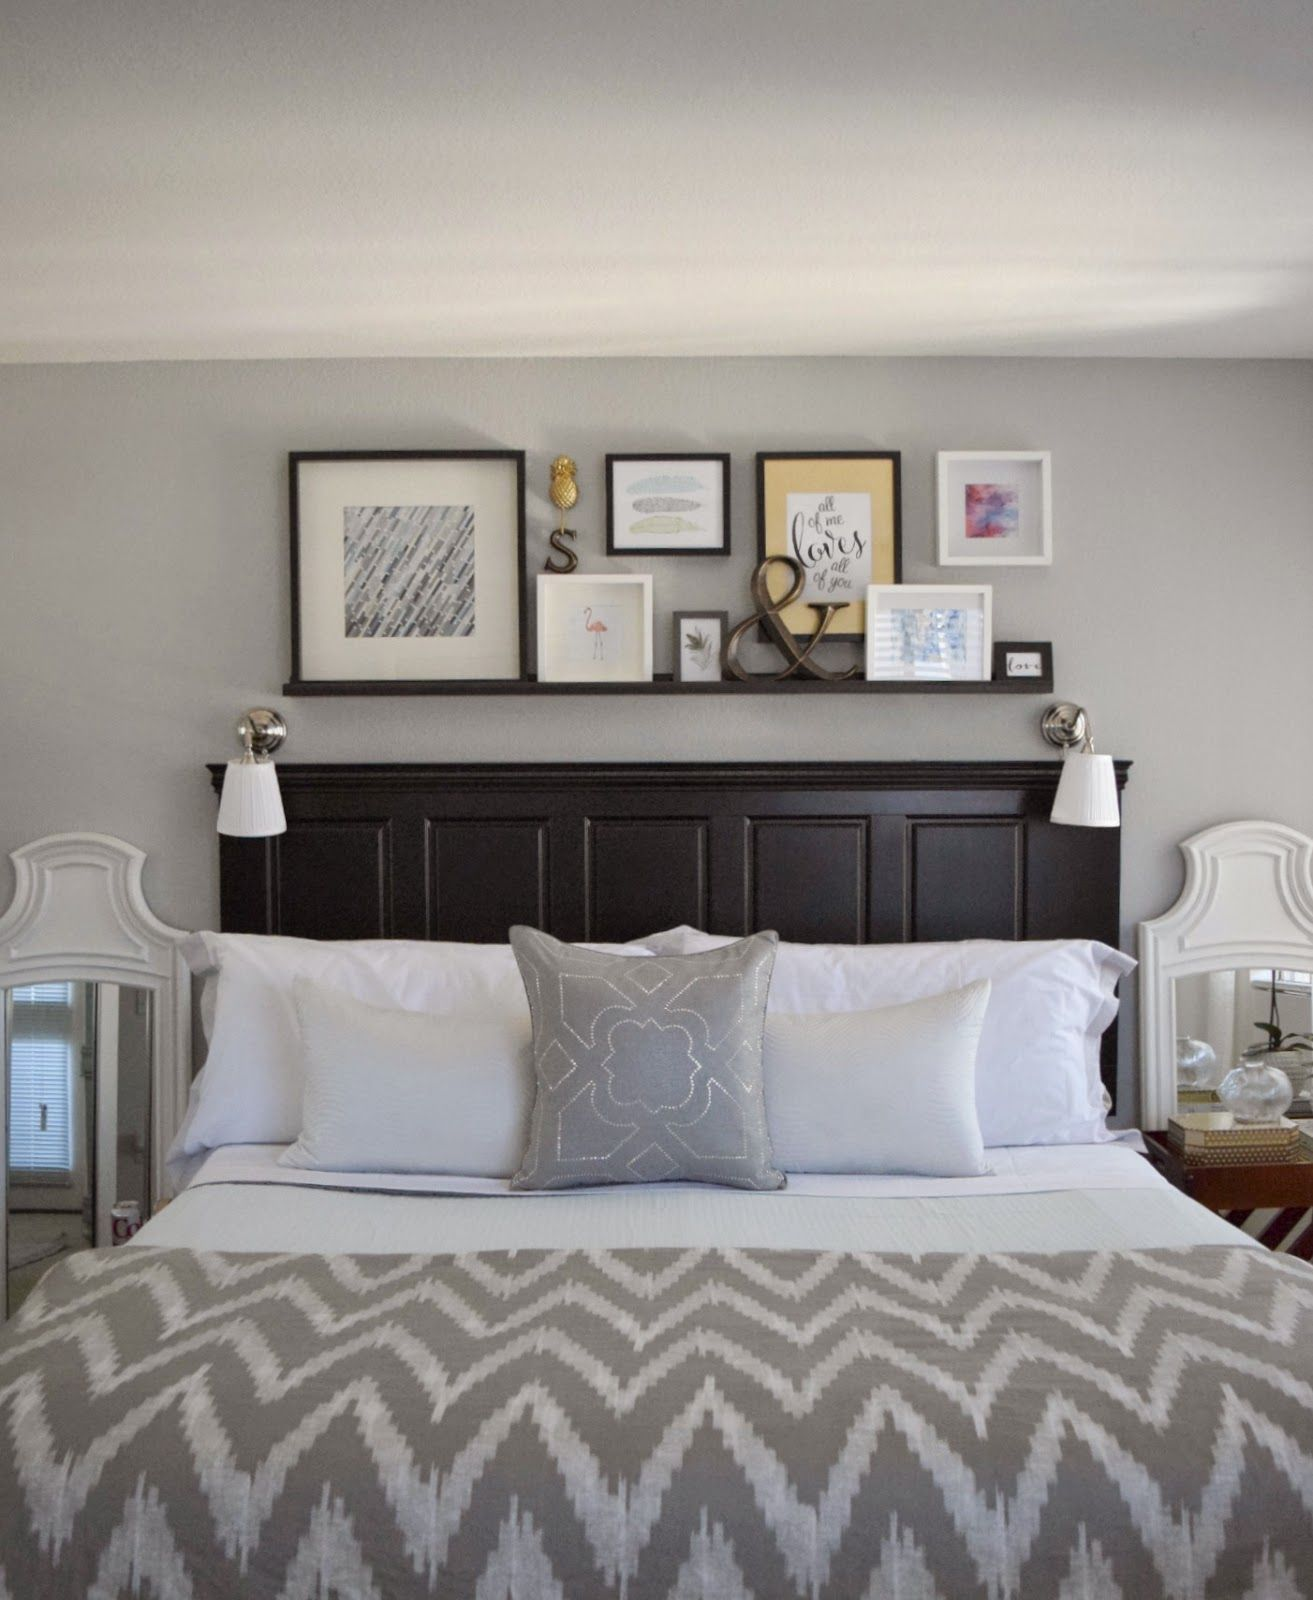 Master Bedroom Art Above Bed How To Make Your Bed Like The Hotels Do Made2make Pinterest